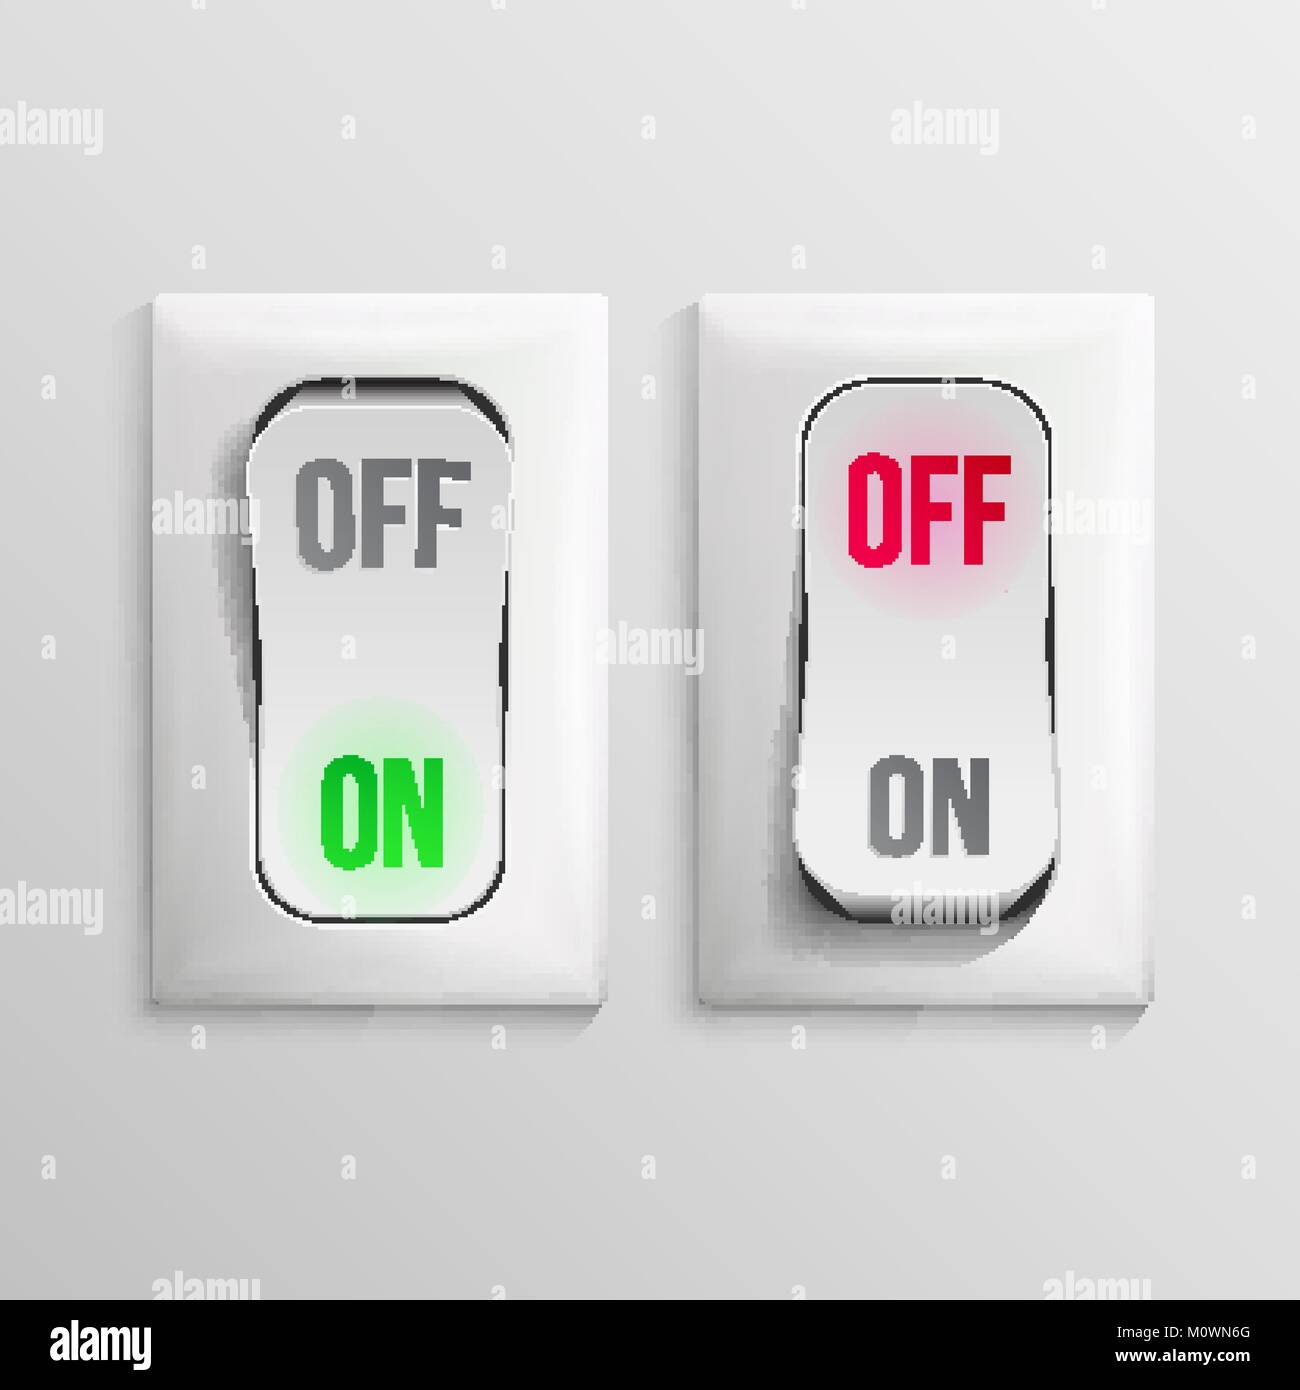 3D Toggle Switch Vector. White Switches With On, Off Position. Electric Light Control Illustration. - Stock Image